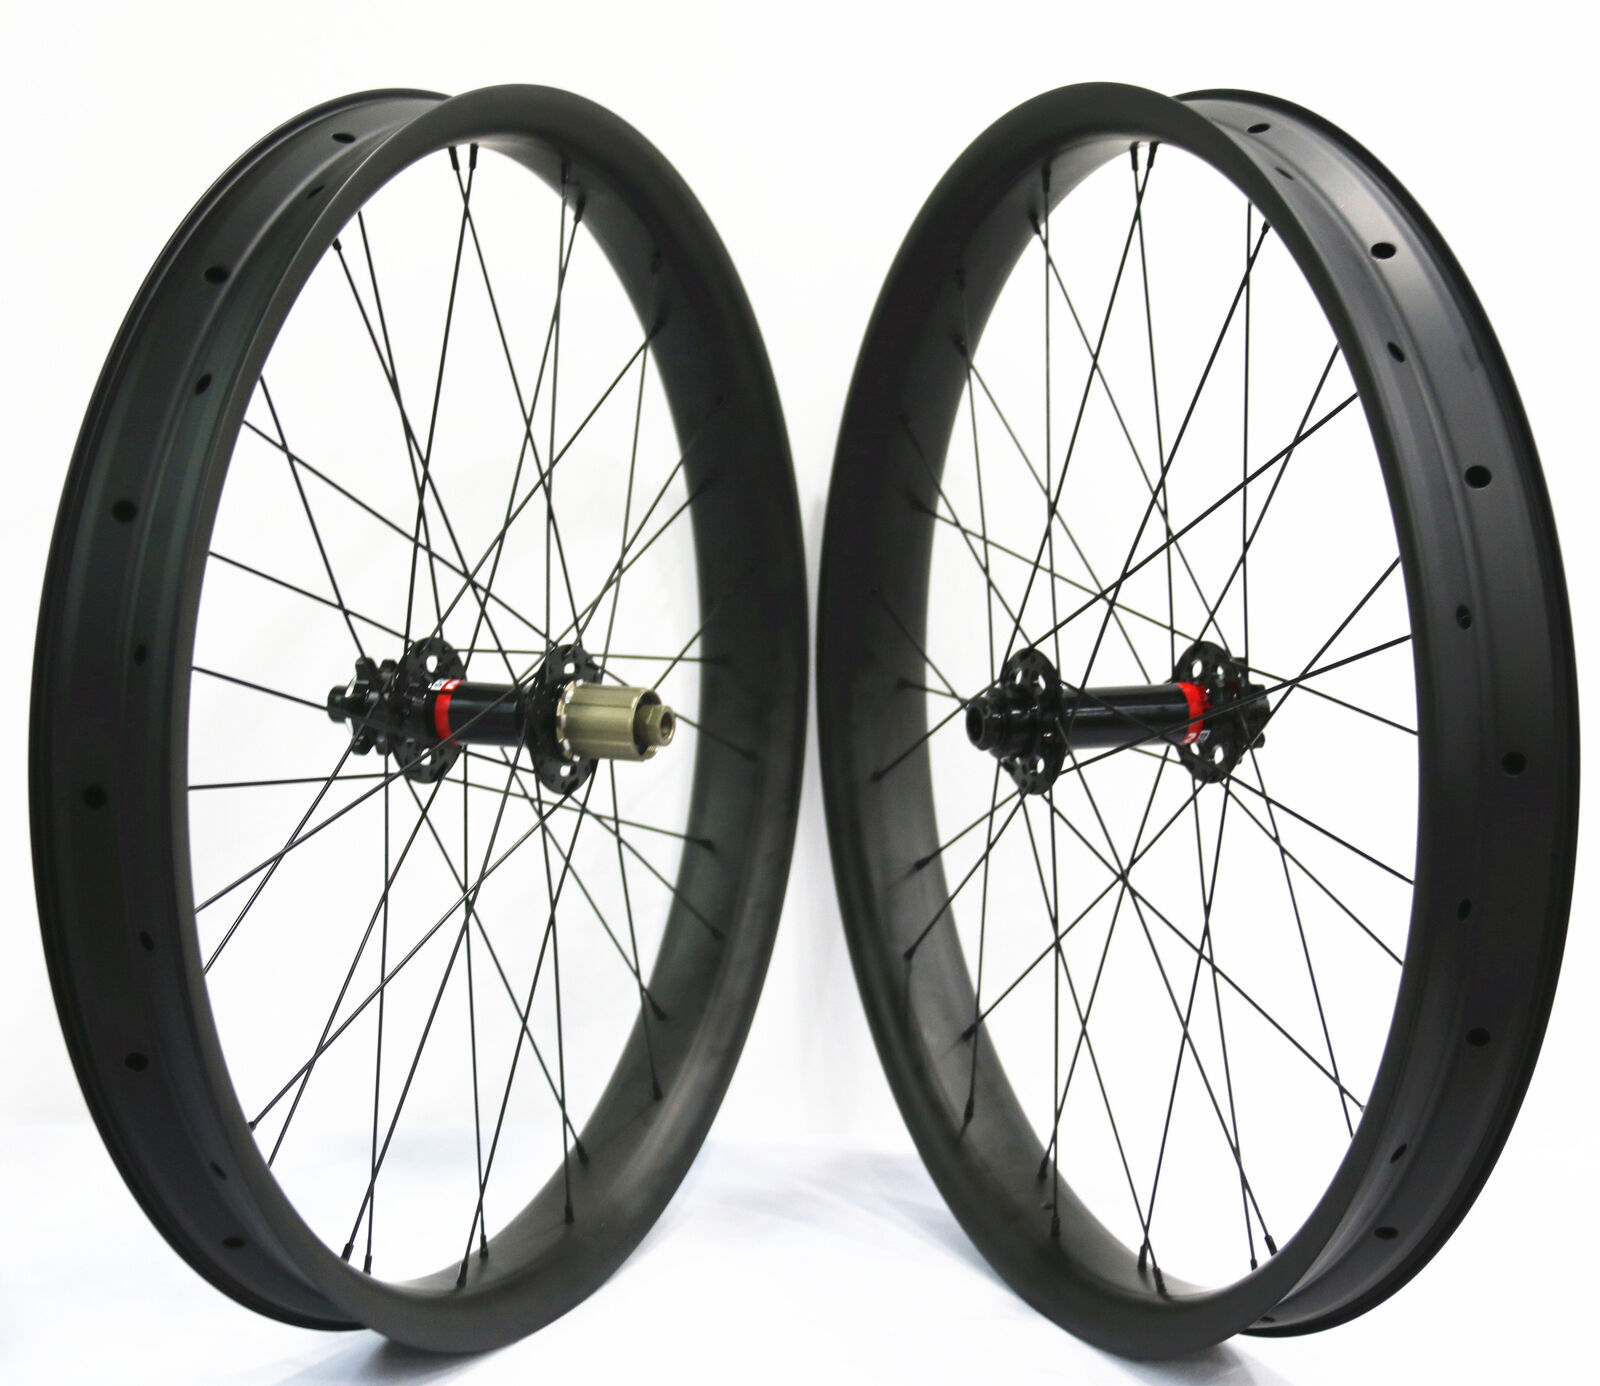 26er Fat Bike carbon Fiber wheelset 65mm wide Snow  Sand Bike wheels Novatec hub